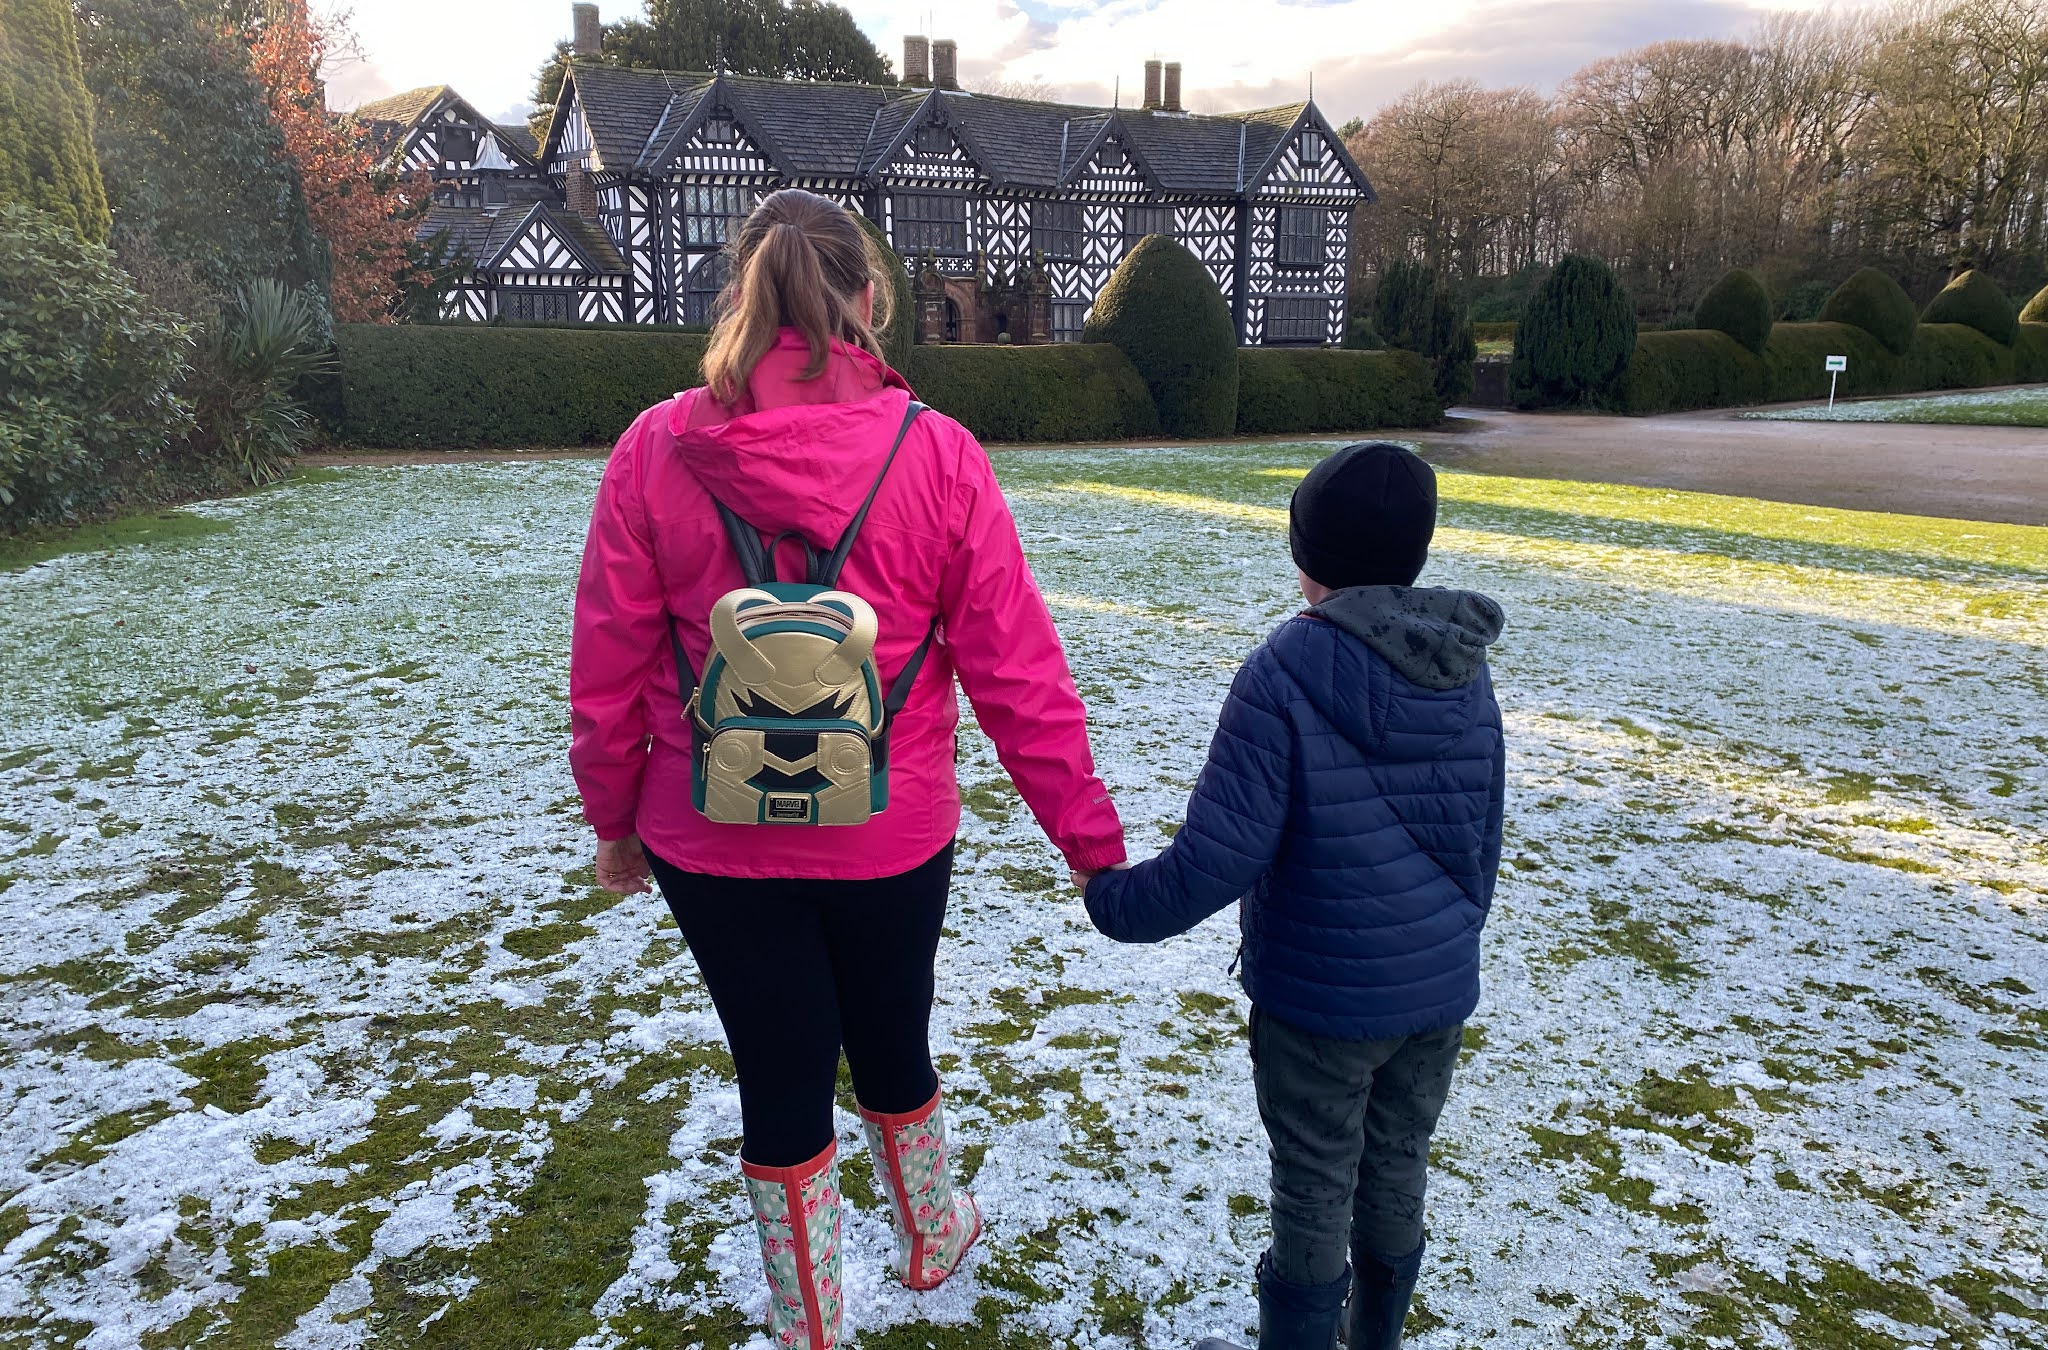 mum and son walking